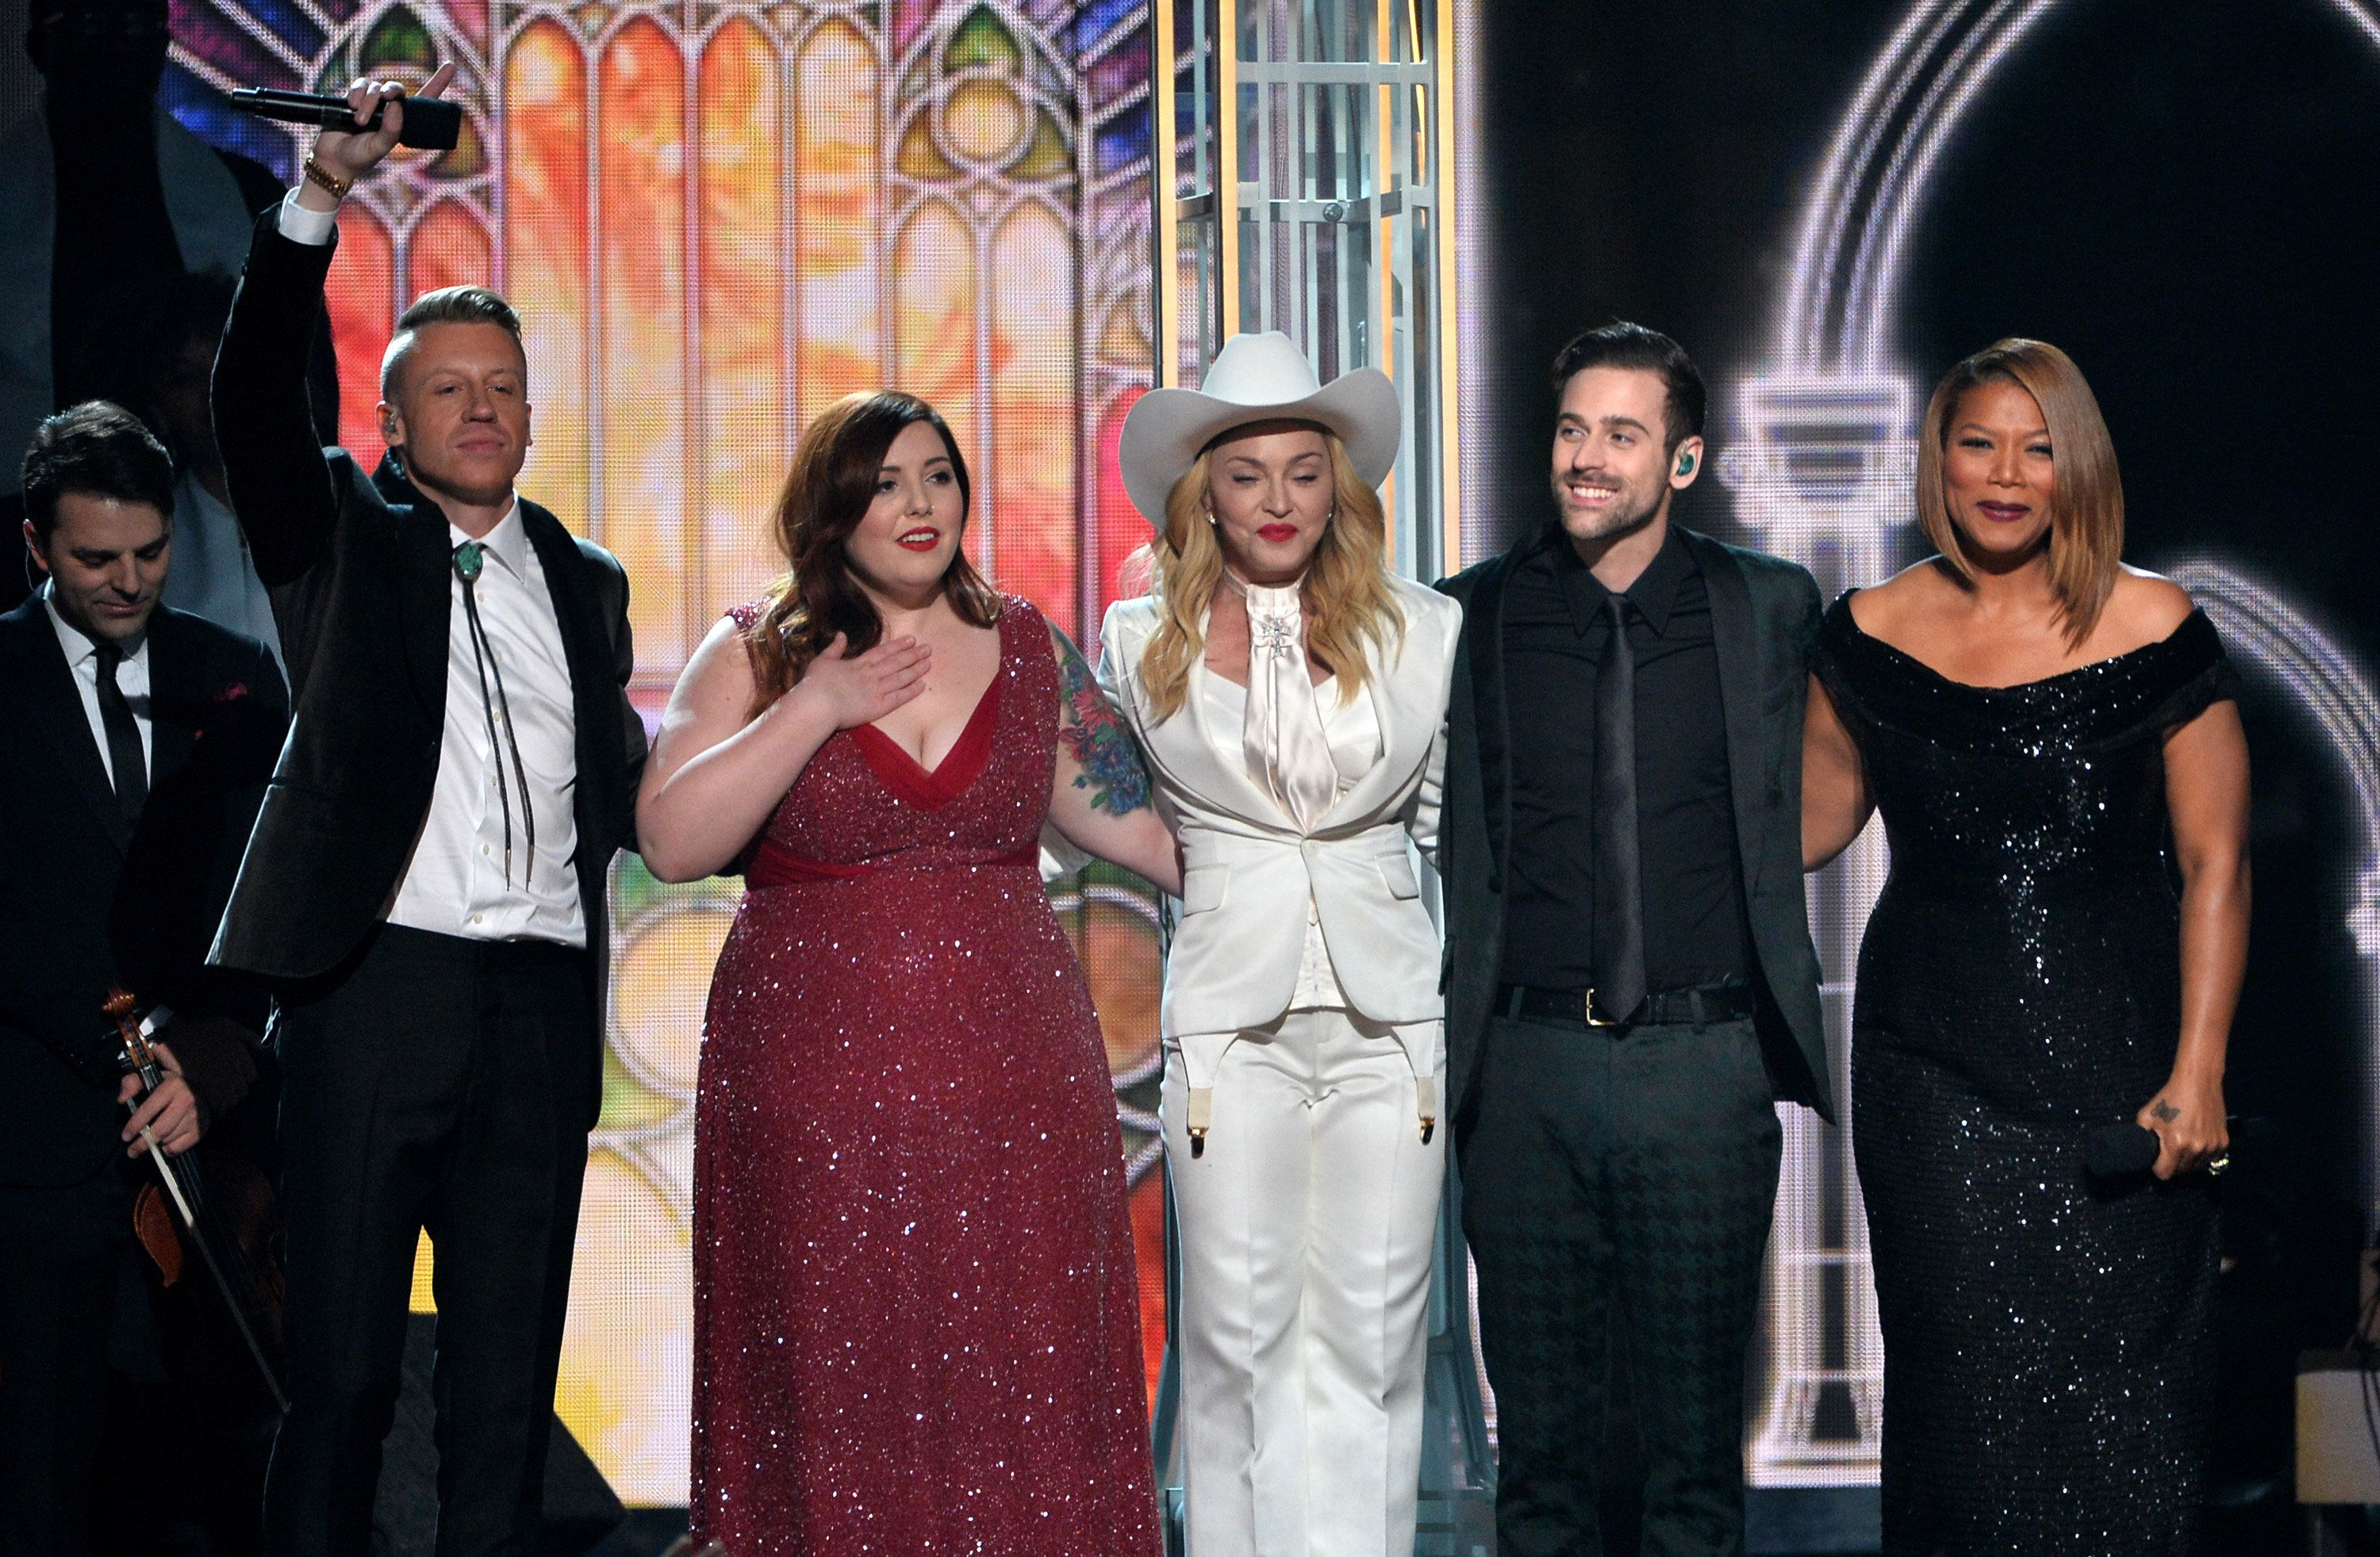 LOS ANGELES, CA - JANUARY 26:  (2nd L-R)Musicians Macklemore, Mary Lambert, Madonna, Ryan Lewis and Queen Latifah perform onstage during the 56th GRAMMY Awards at Staples Center on January 26, 2014 in Los Angeles, California.  (Photo by Kevin Winter/WireImage)